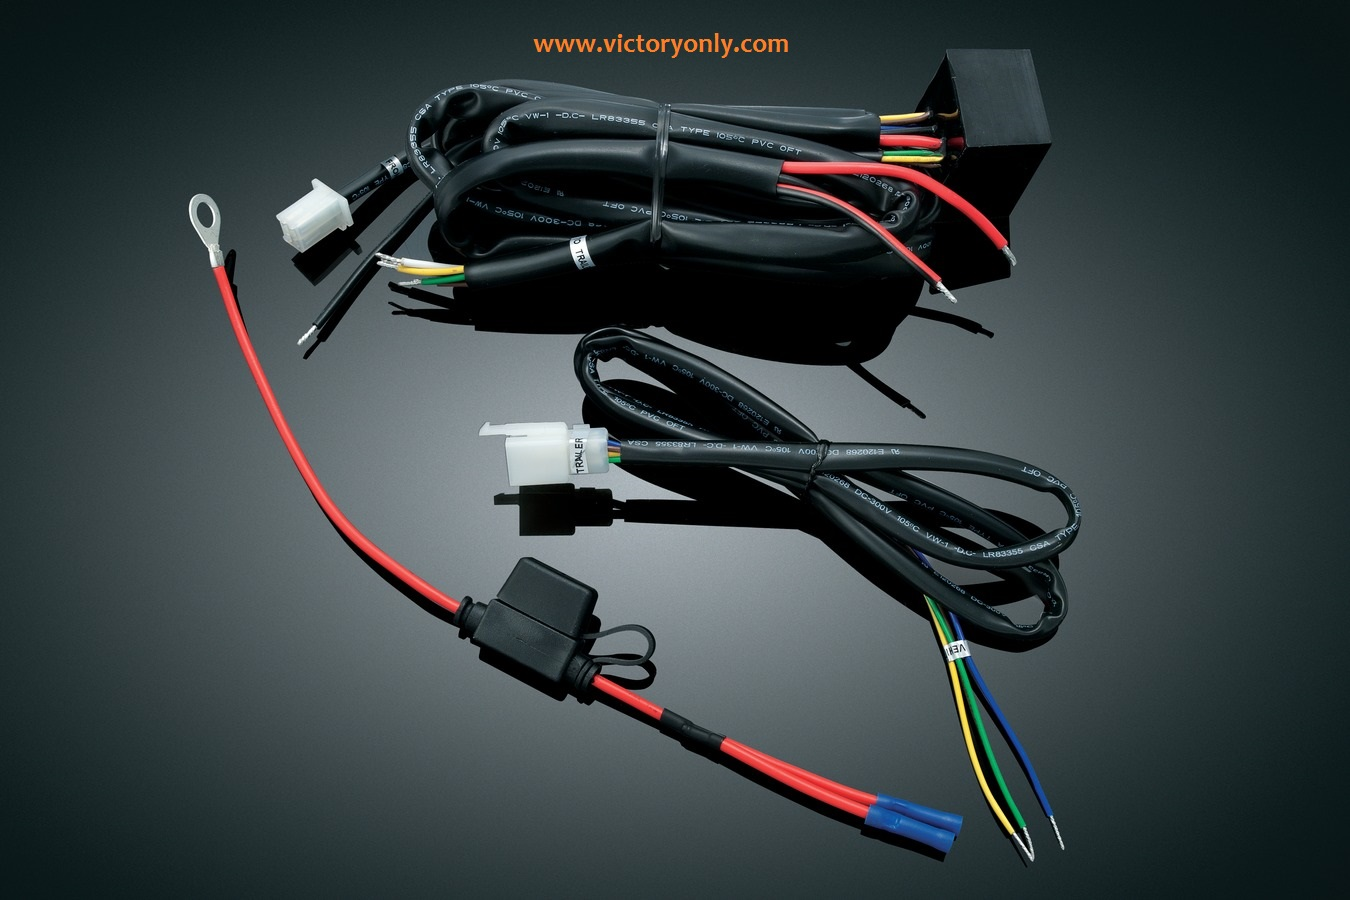 16997_kur_7671_tt_u_13_1350x900_RGB_72DPI trailer wiring harnesses for victory motorcycle Universal Wiring Harness Diagram at crackthecode.co